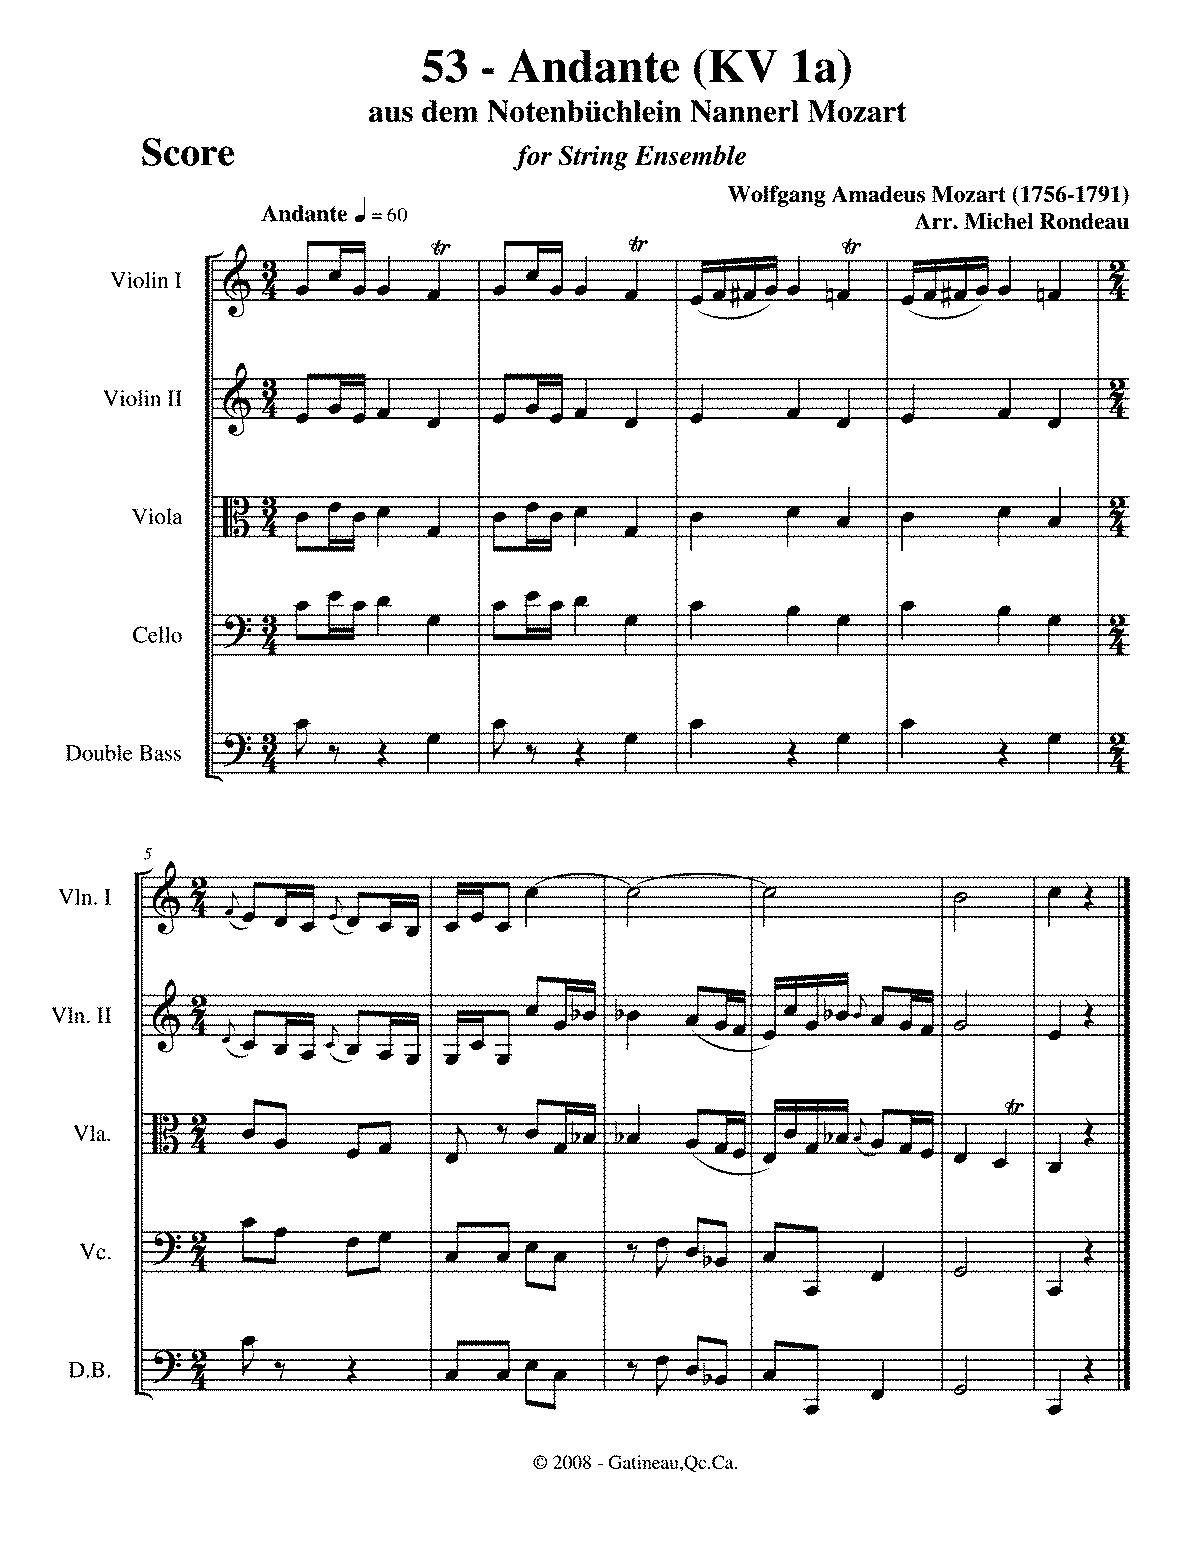 What was mozarts fist composition